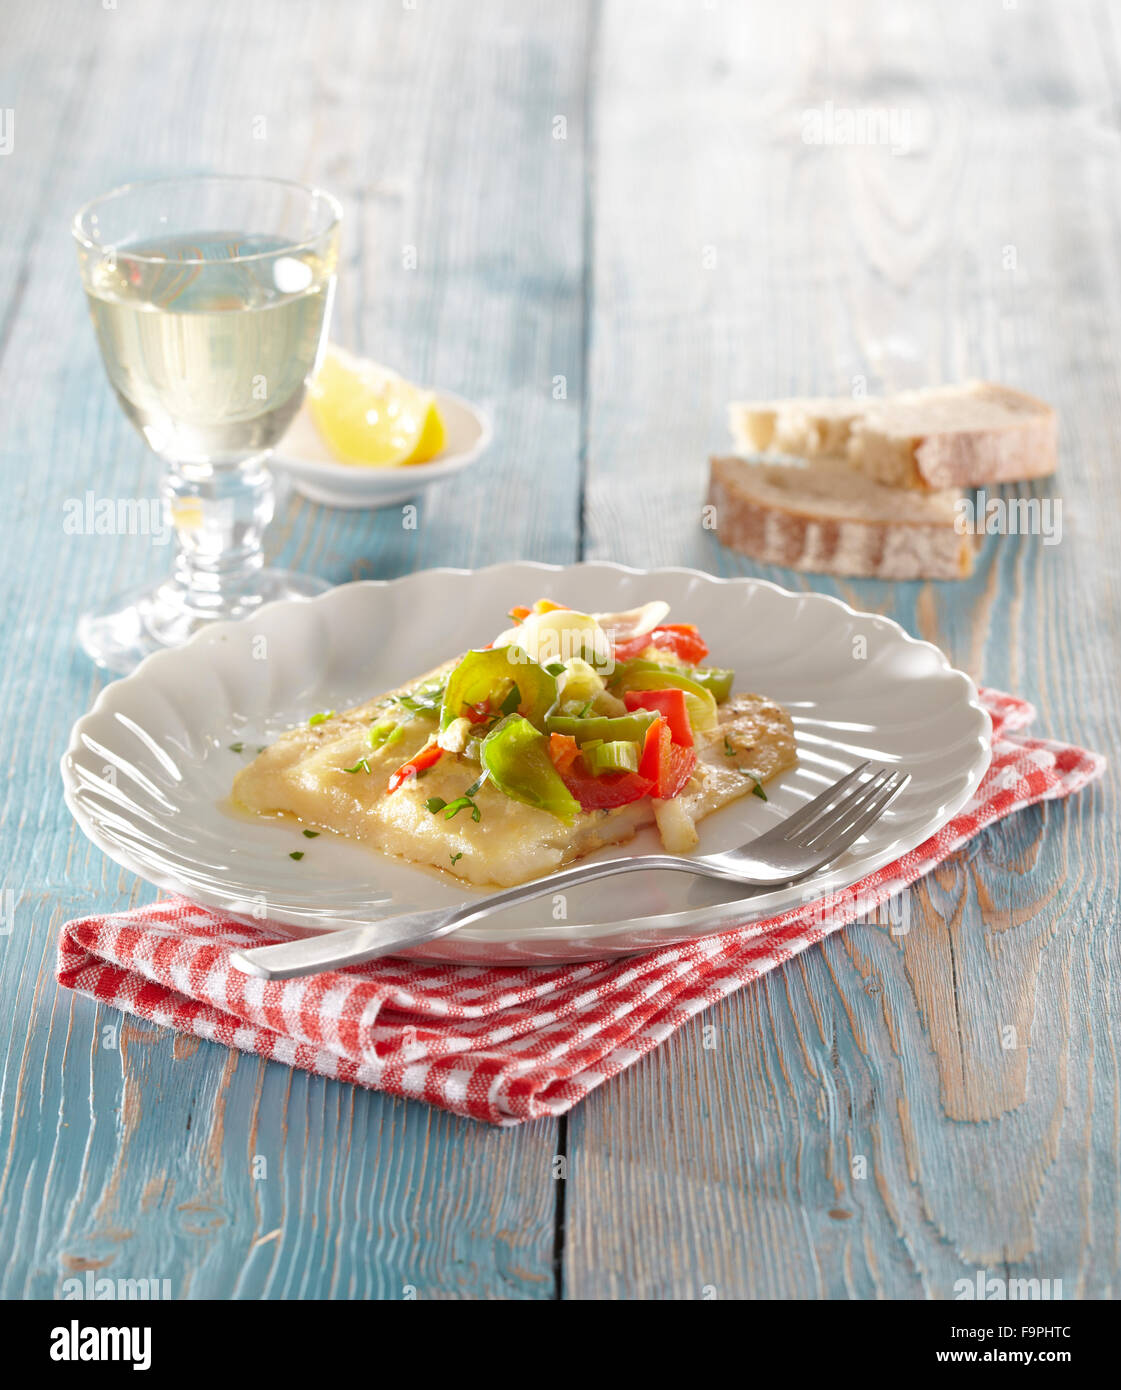 Tin foil baked fish stock photo royalty free image for Tin foil fish